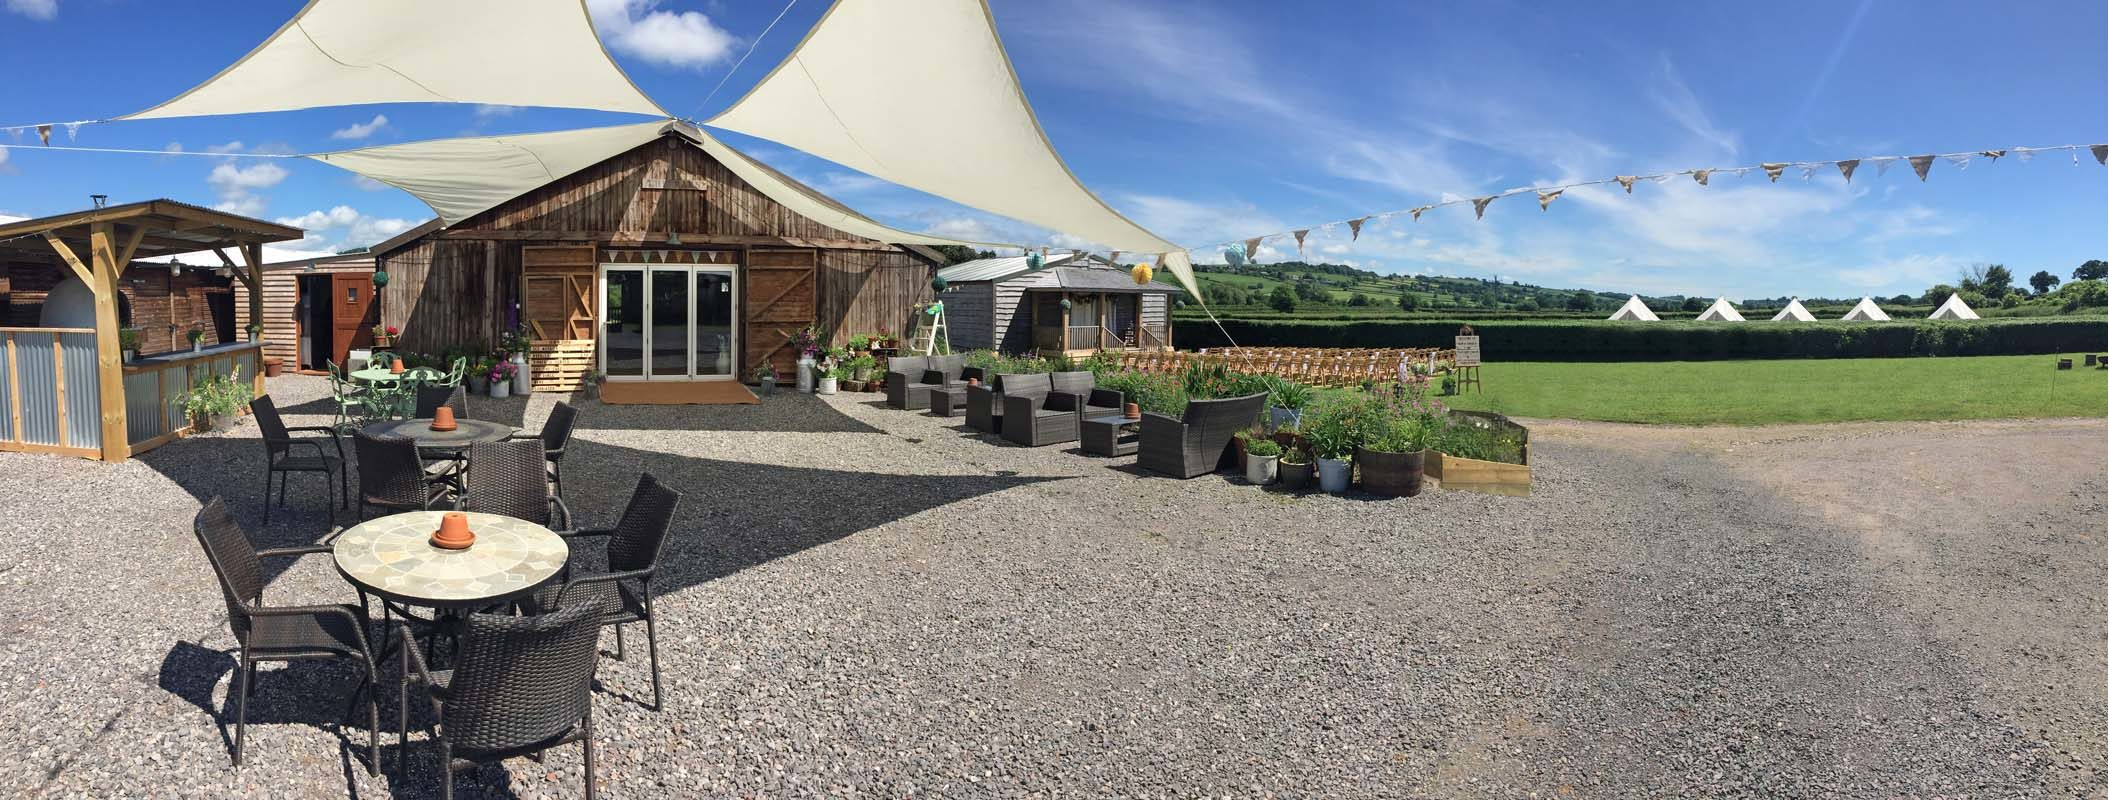 The Barn at Cott Farm Wedding Venue in East Chinnock, Somerset